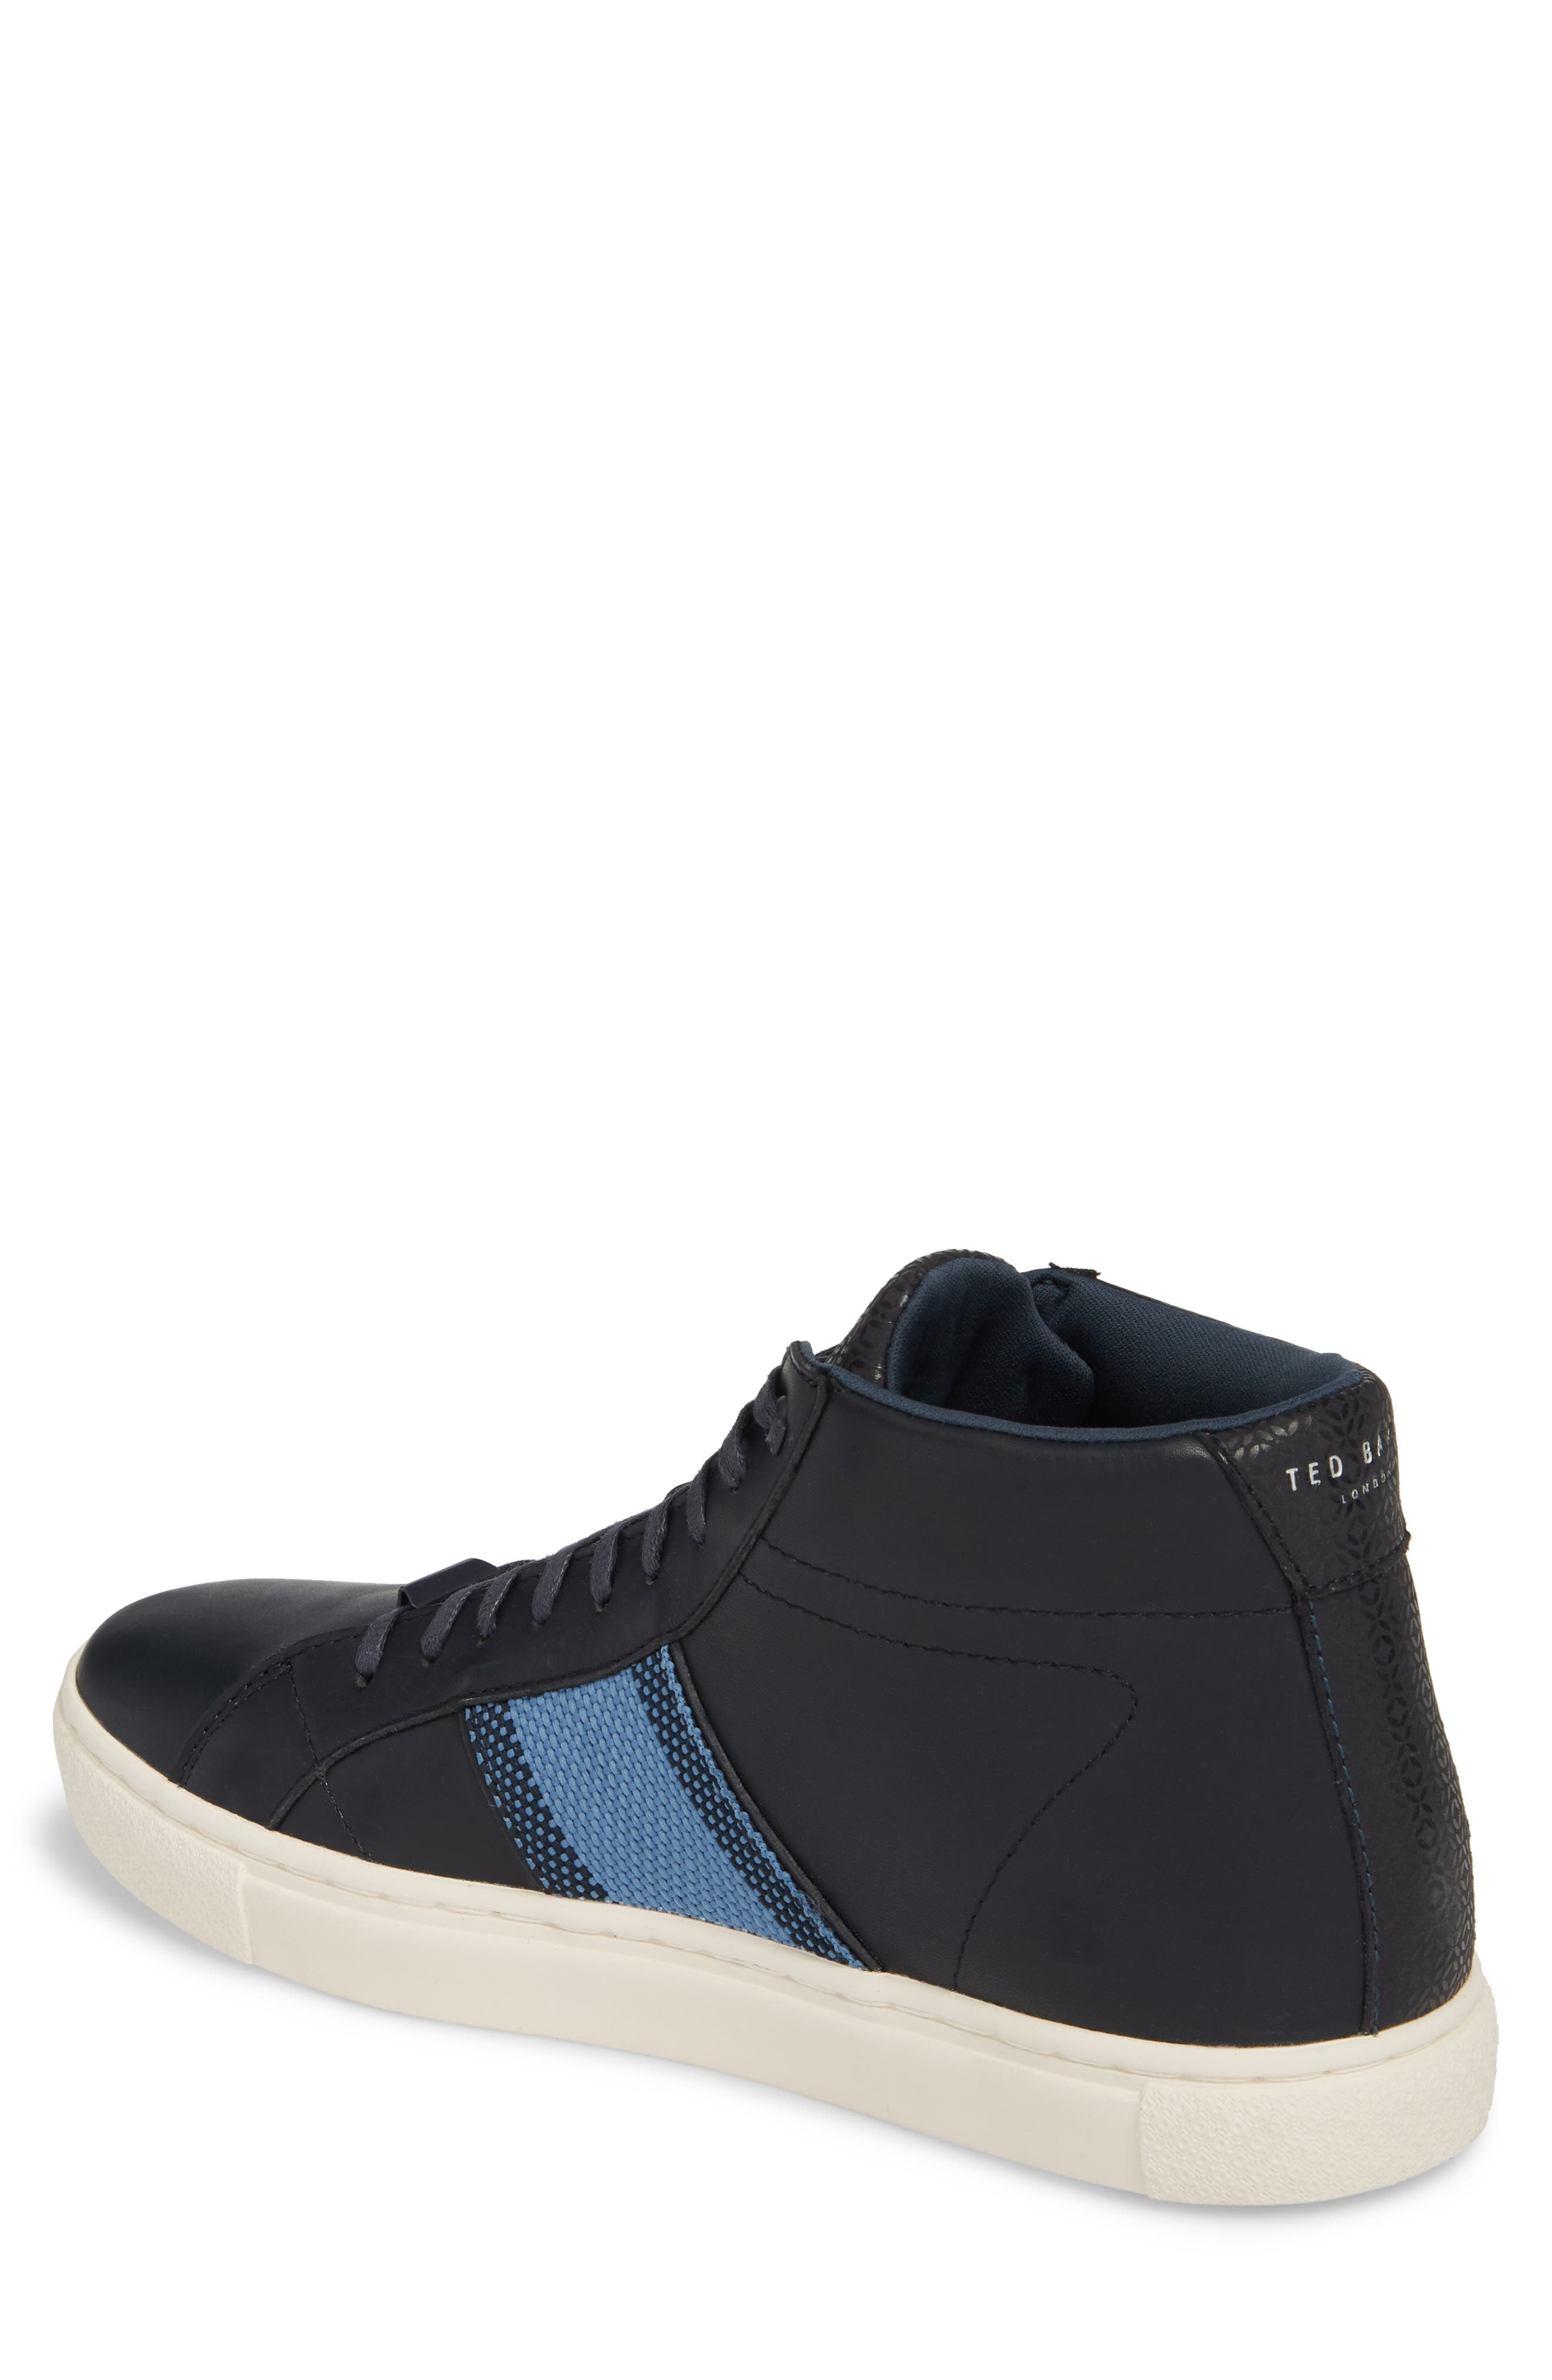 Cruuw High Top Sneaker,                             Alternate thumbnail 2, color,                             Dark Blue Leather